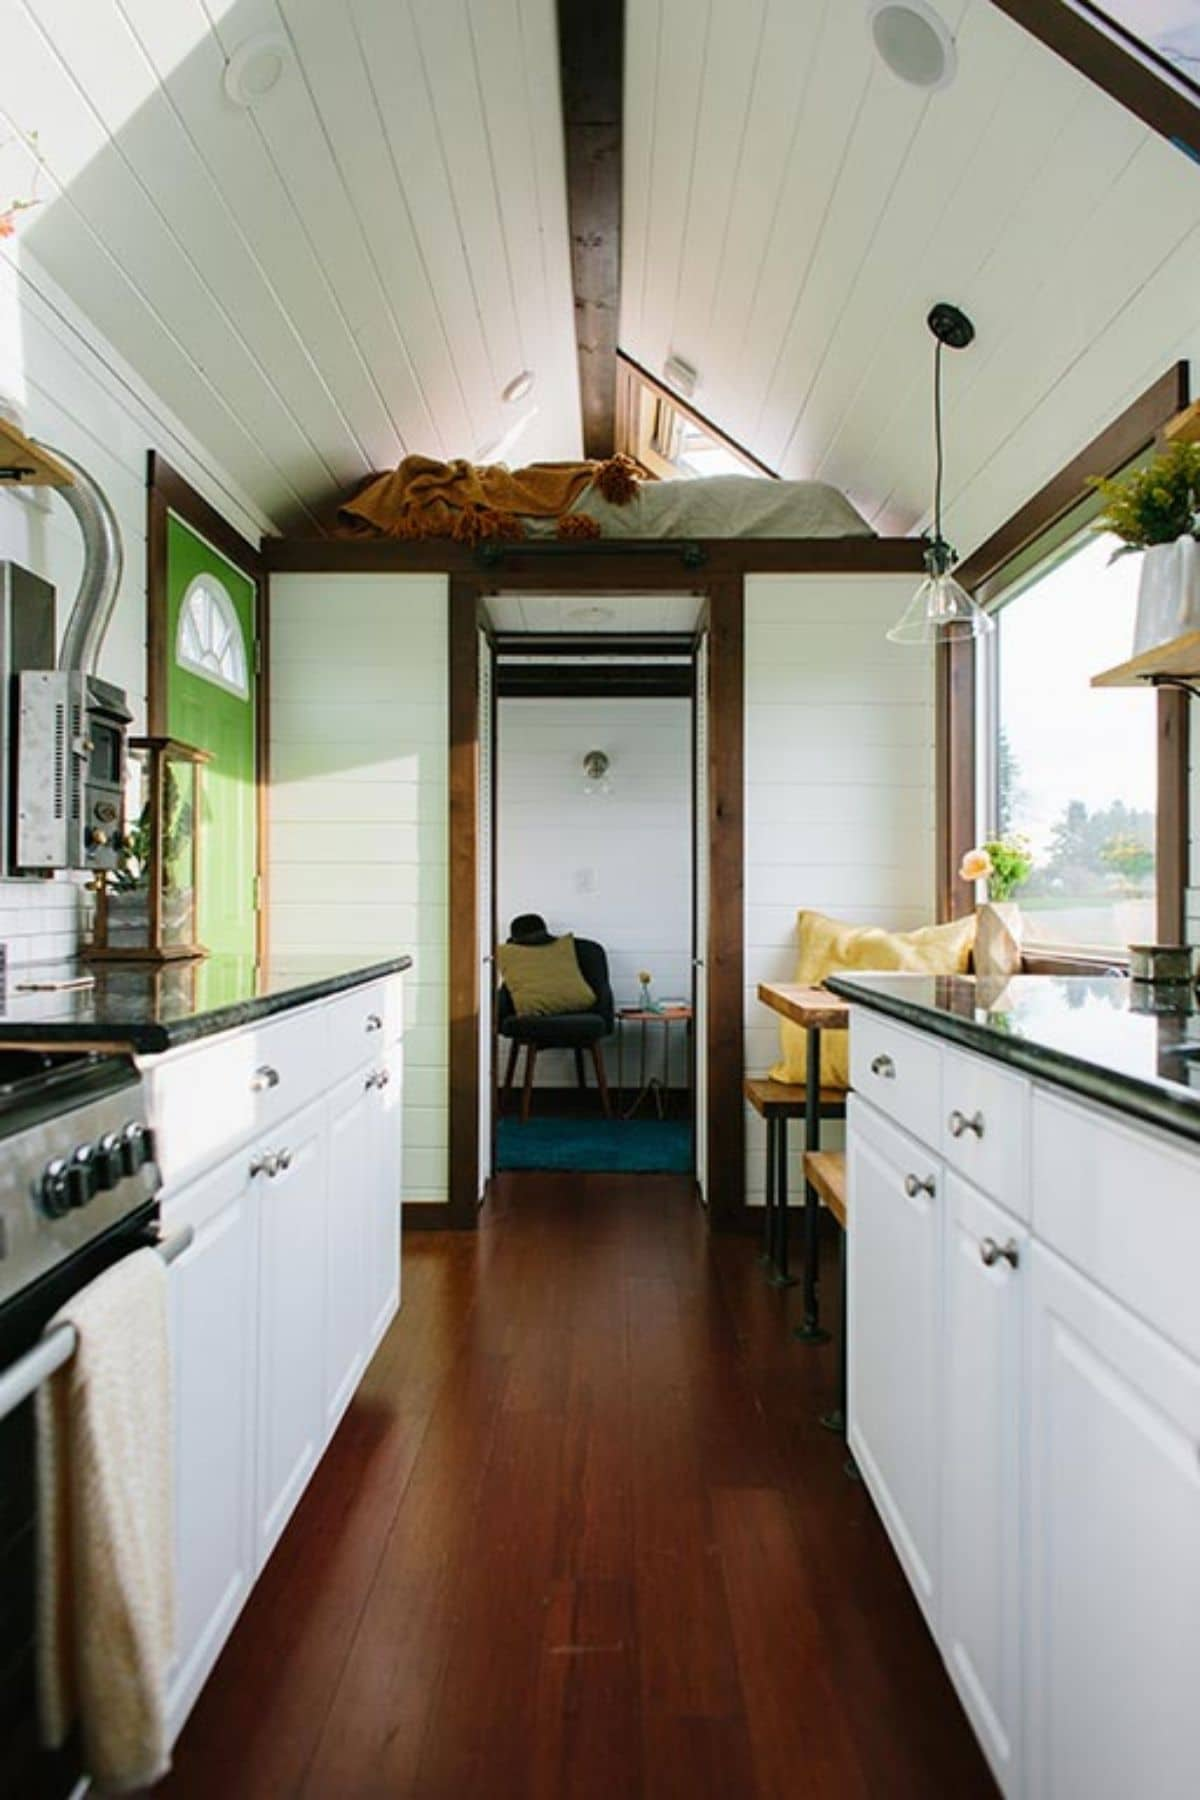 View of tiny house kitchen with white cabinets